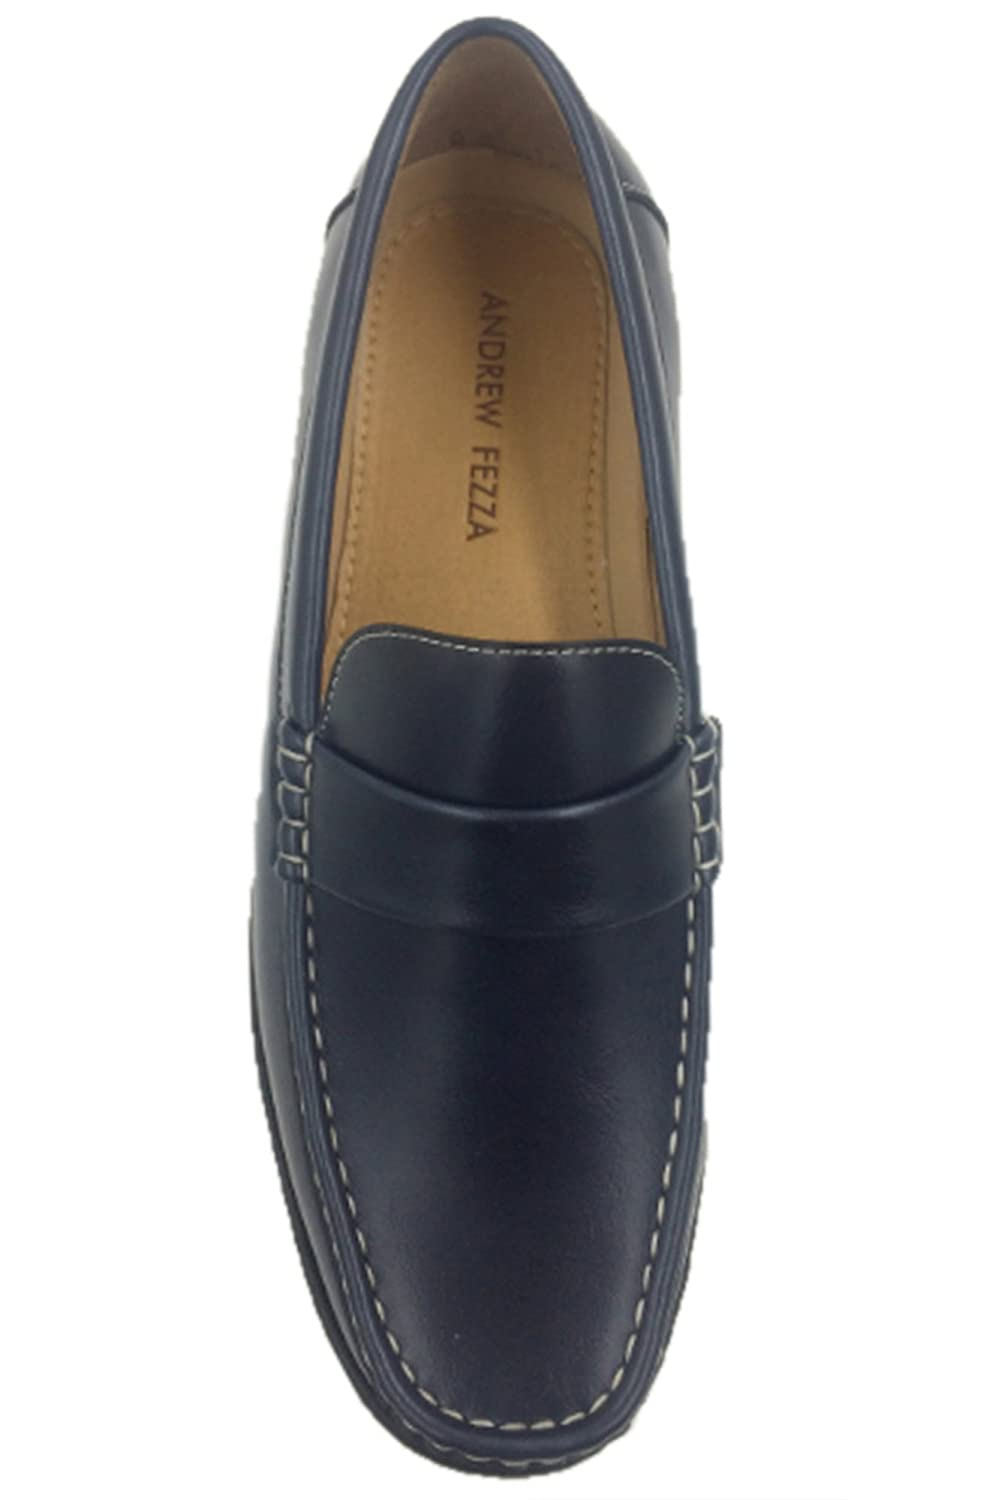 Amazon.com | Andrew Fezza AF-1966 FBM SAM Mens Slip-On Versatile Loafer Shoes | Loafers & Slip-Ons